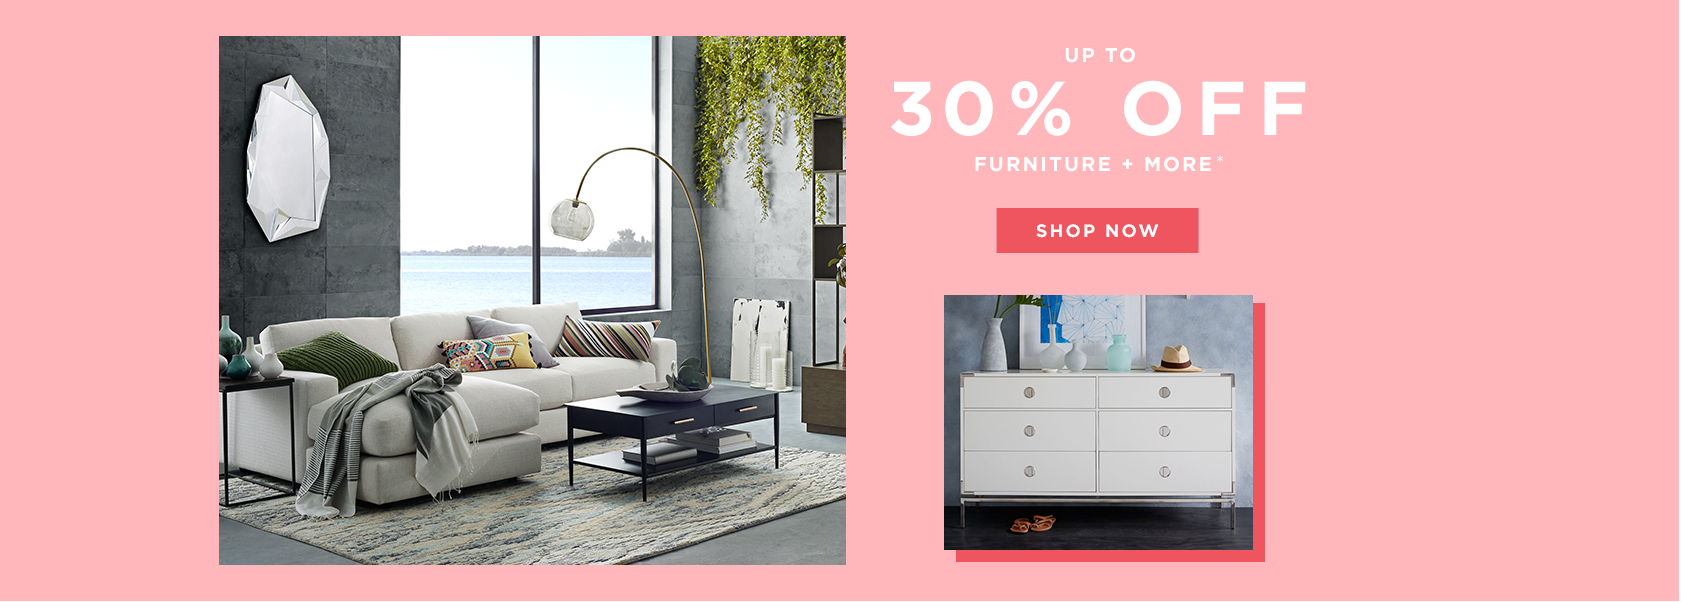 Up To 30% Off Furniture + More